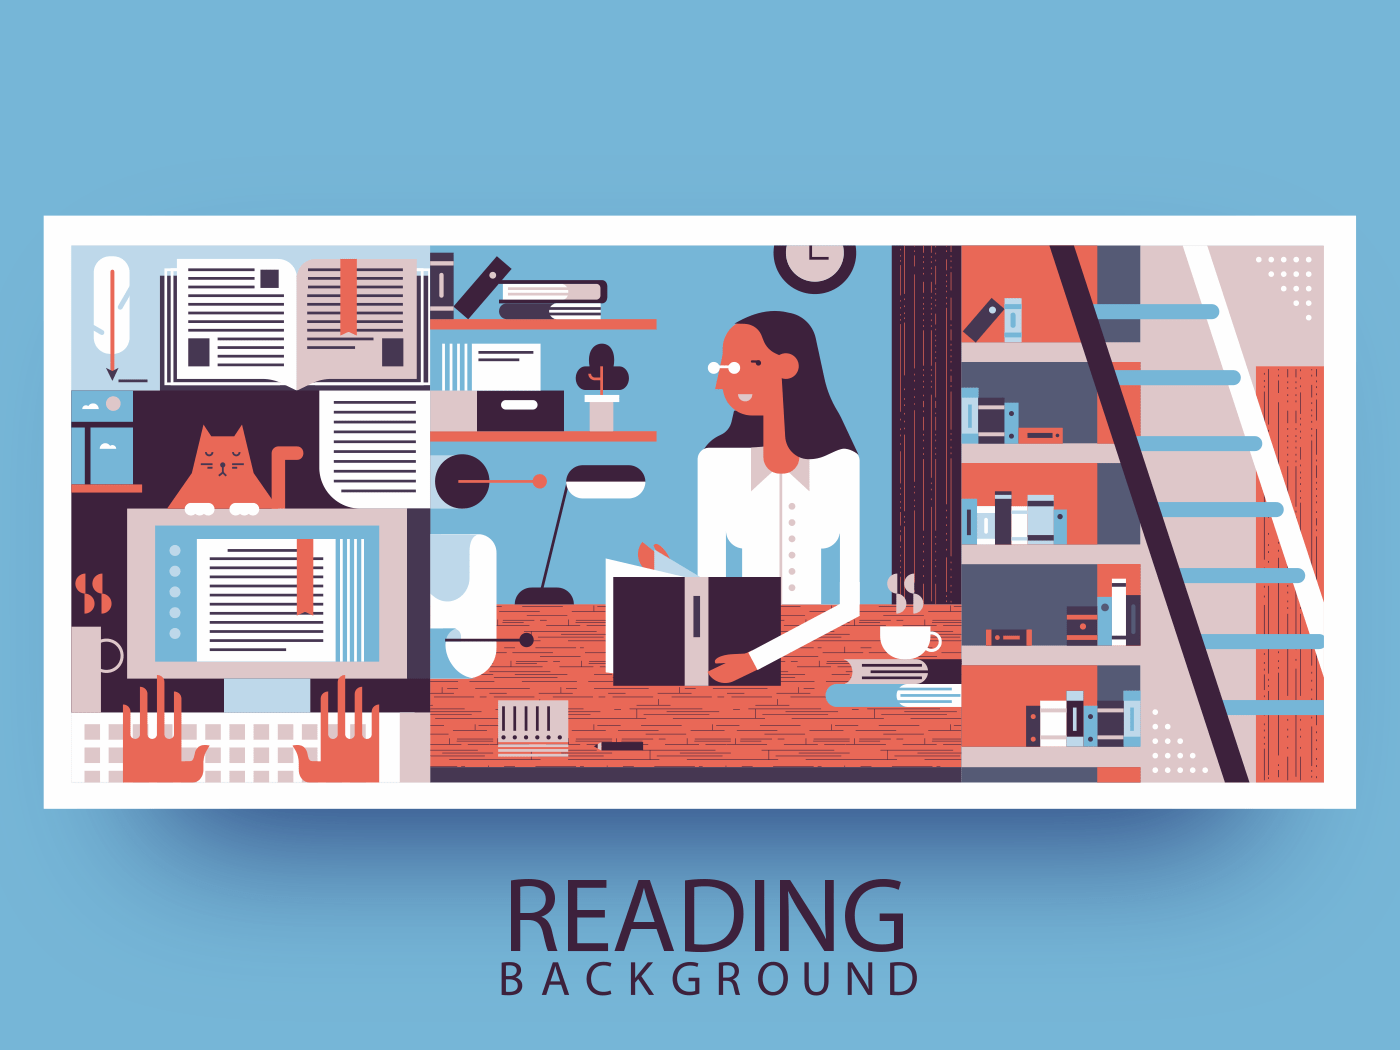 Reading abstract background